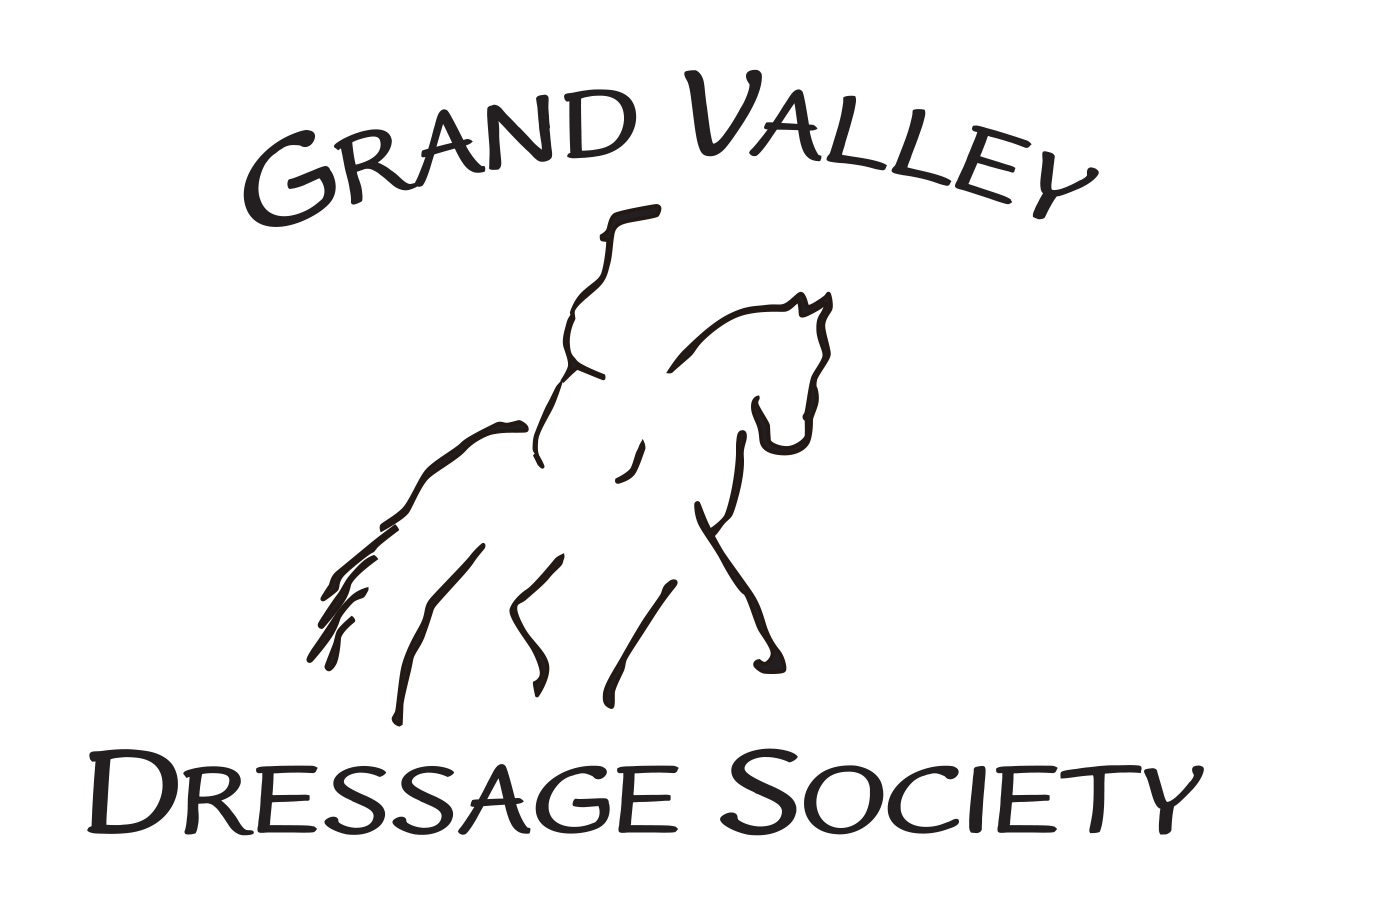 Rocky Mountain Dressage Society: Grand Valley Chapter